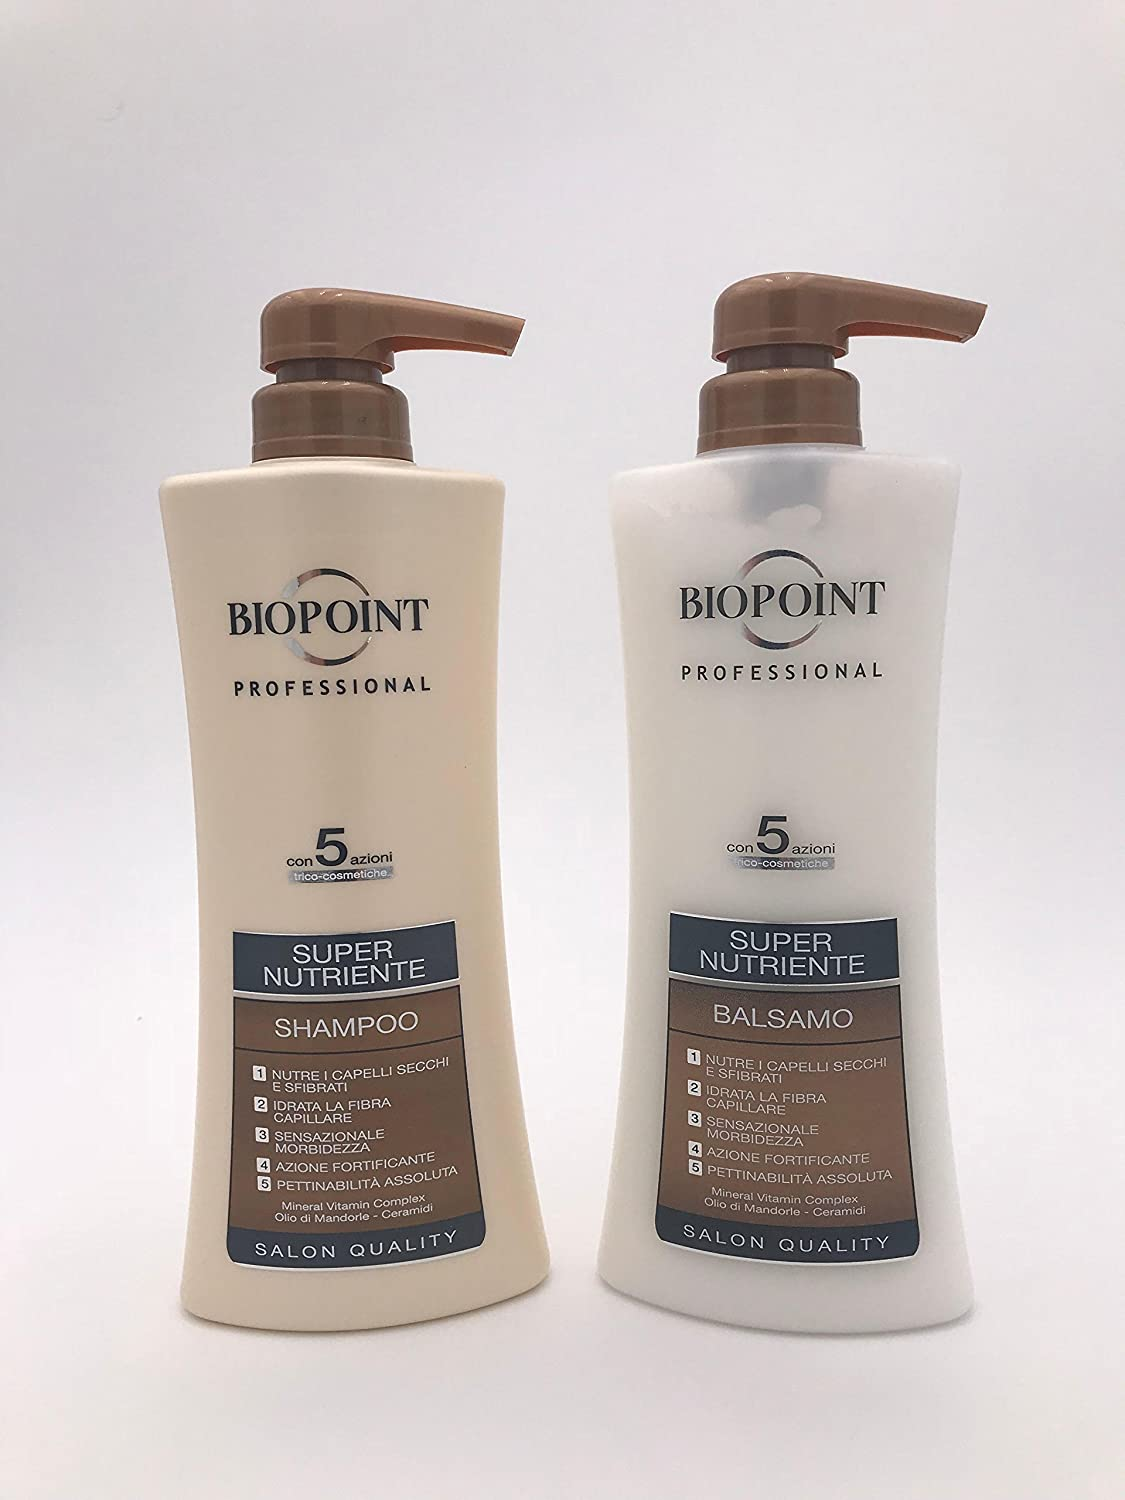 Biopoint Kit pelo super Nutriente Champú 400 ml + Loción 400 ml | Linea Professional Salon Quality para pelo Cubos y sfibrati: Amazon.es: Belleza